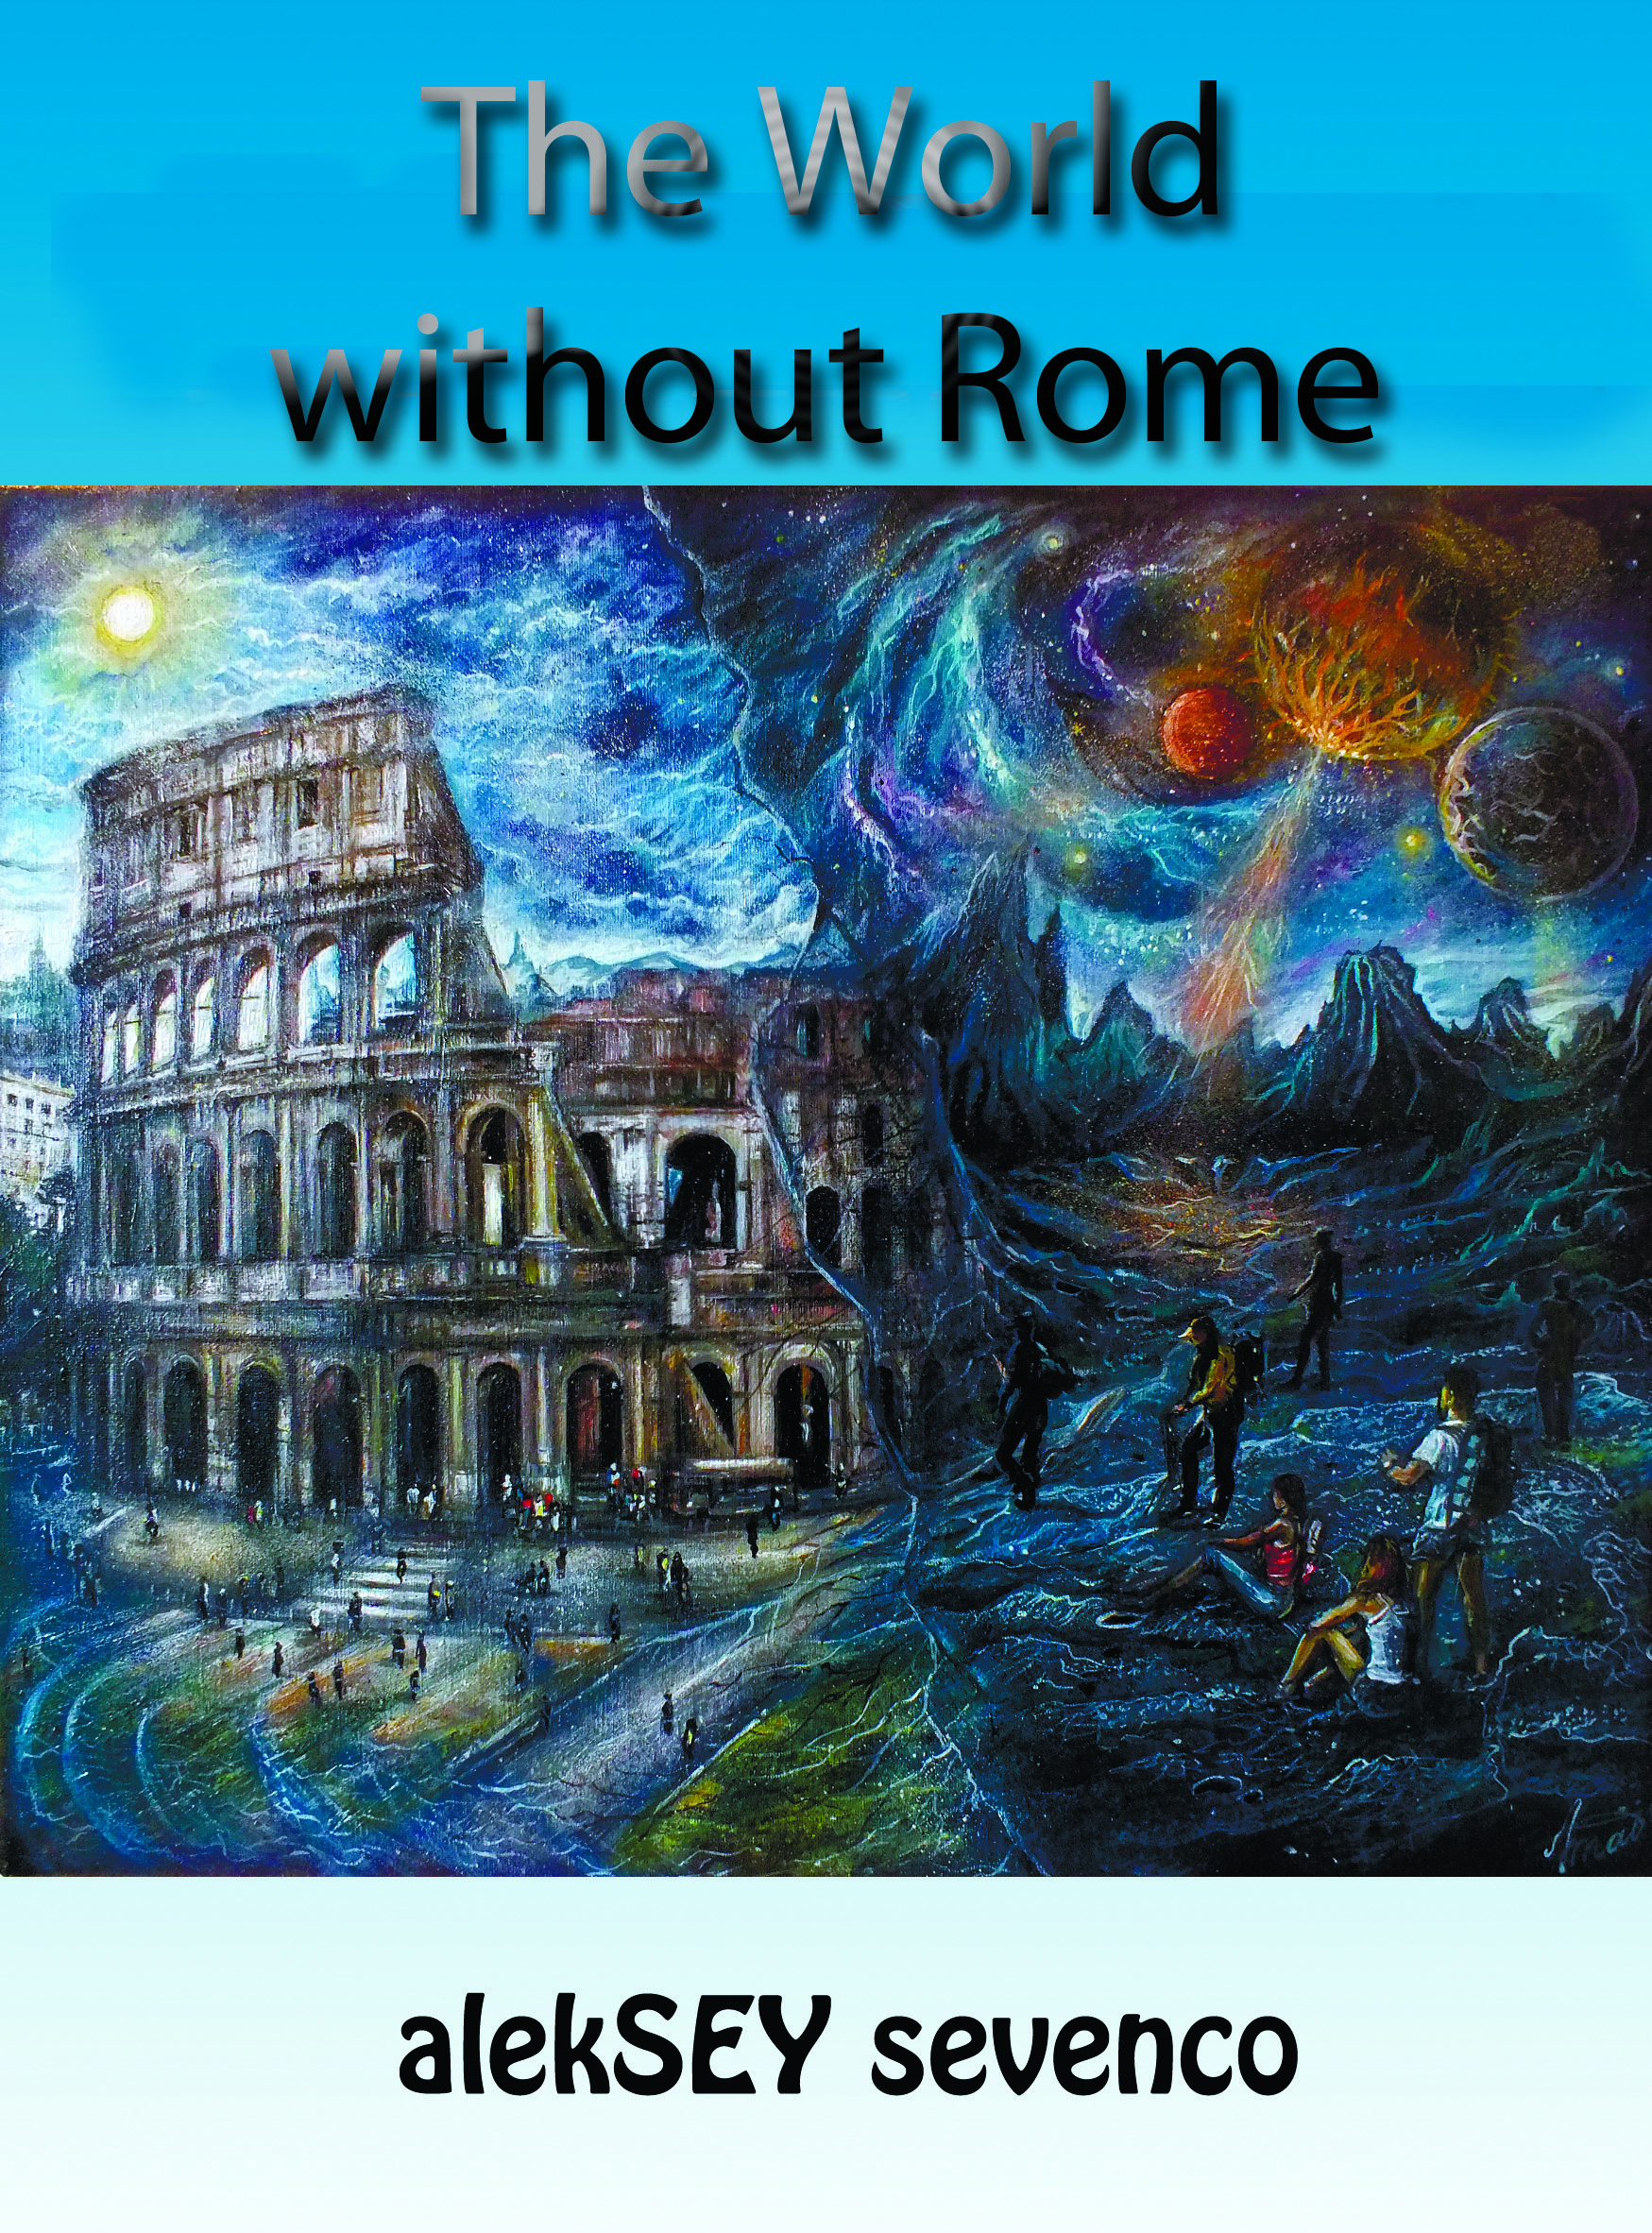 The World Without Rome Aleksey Sevenco